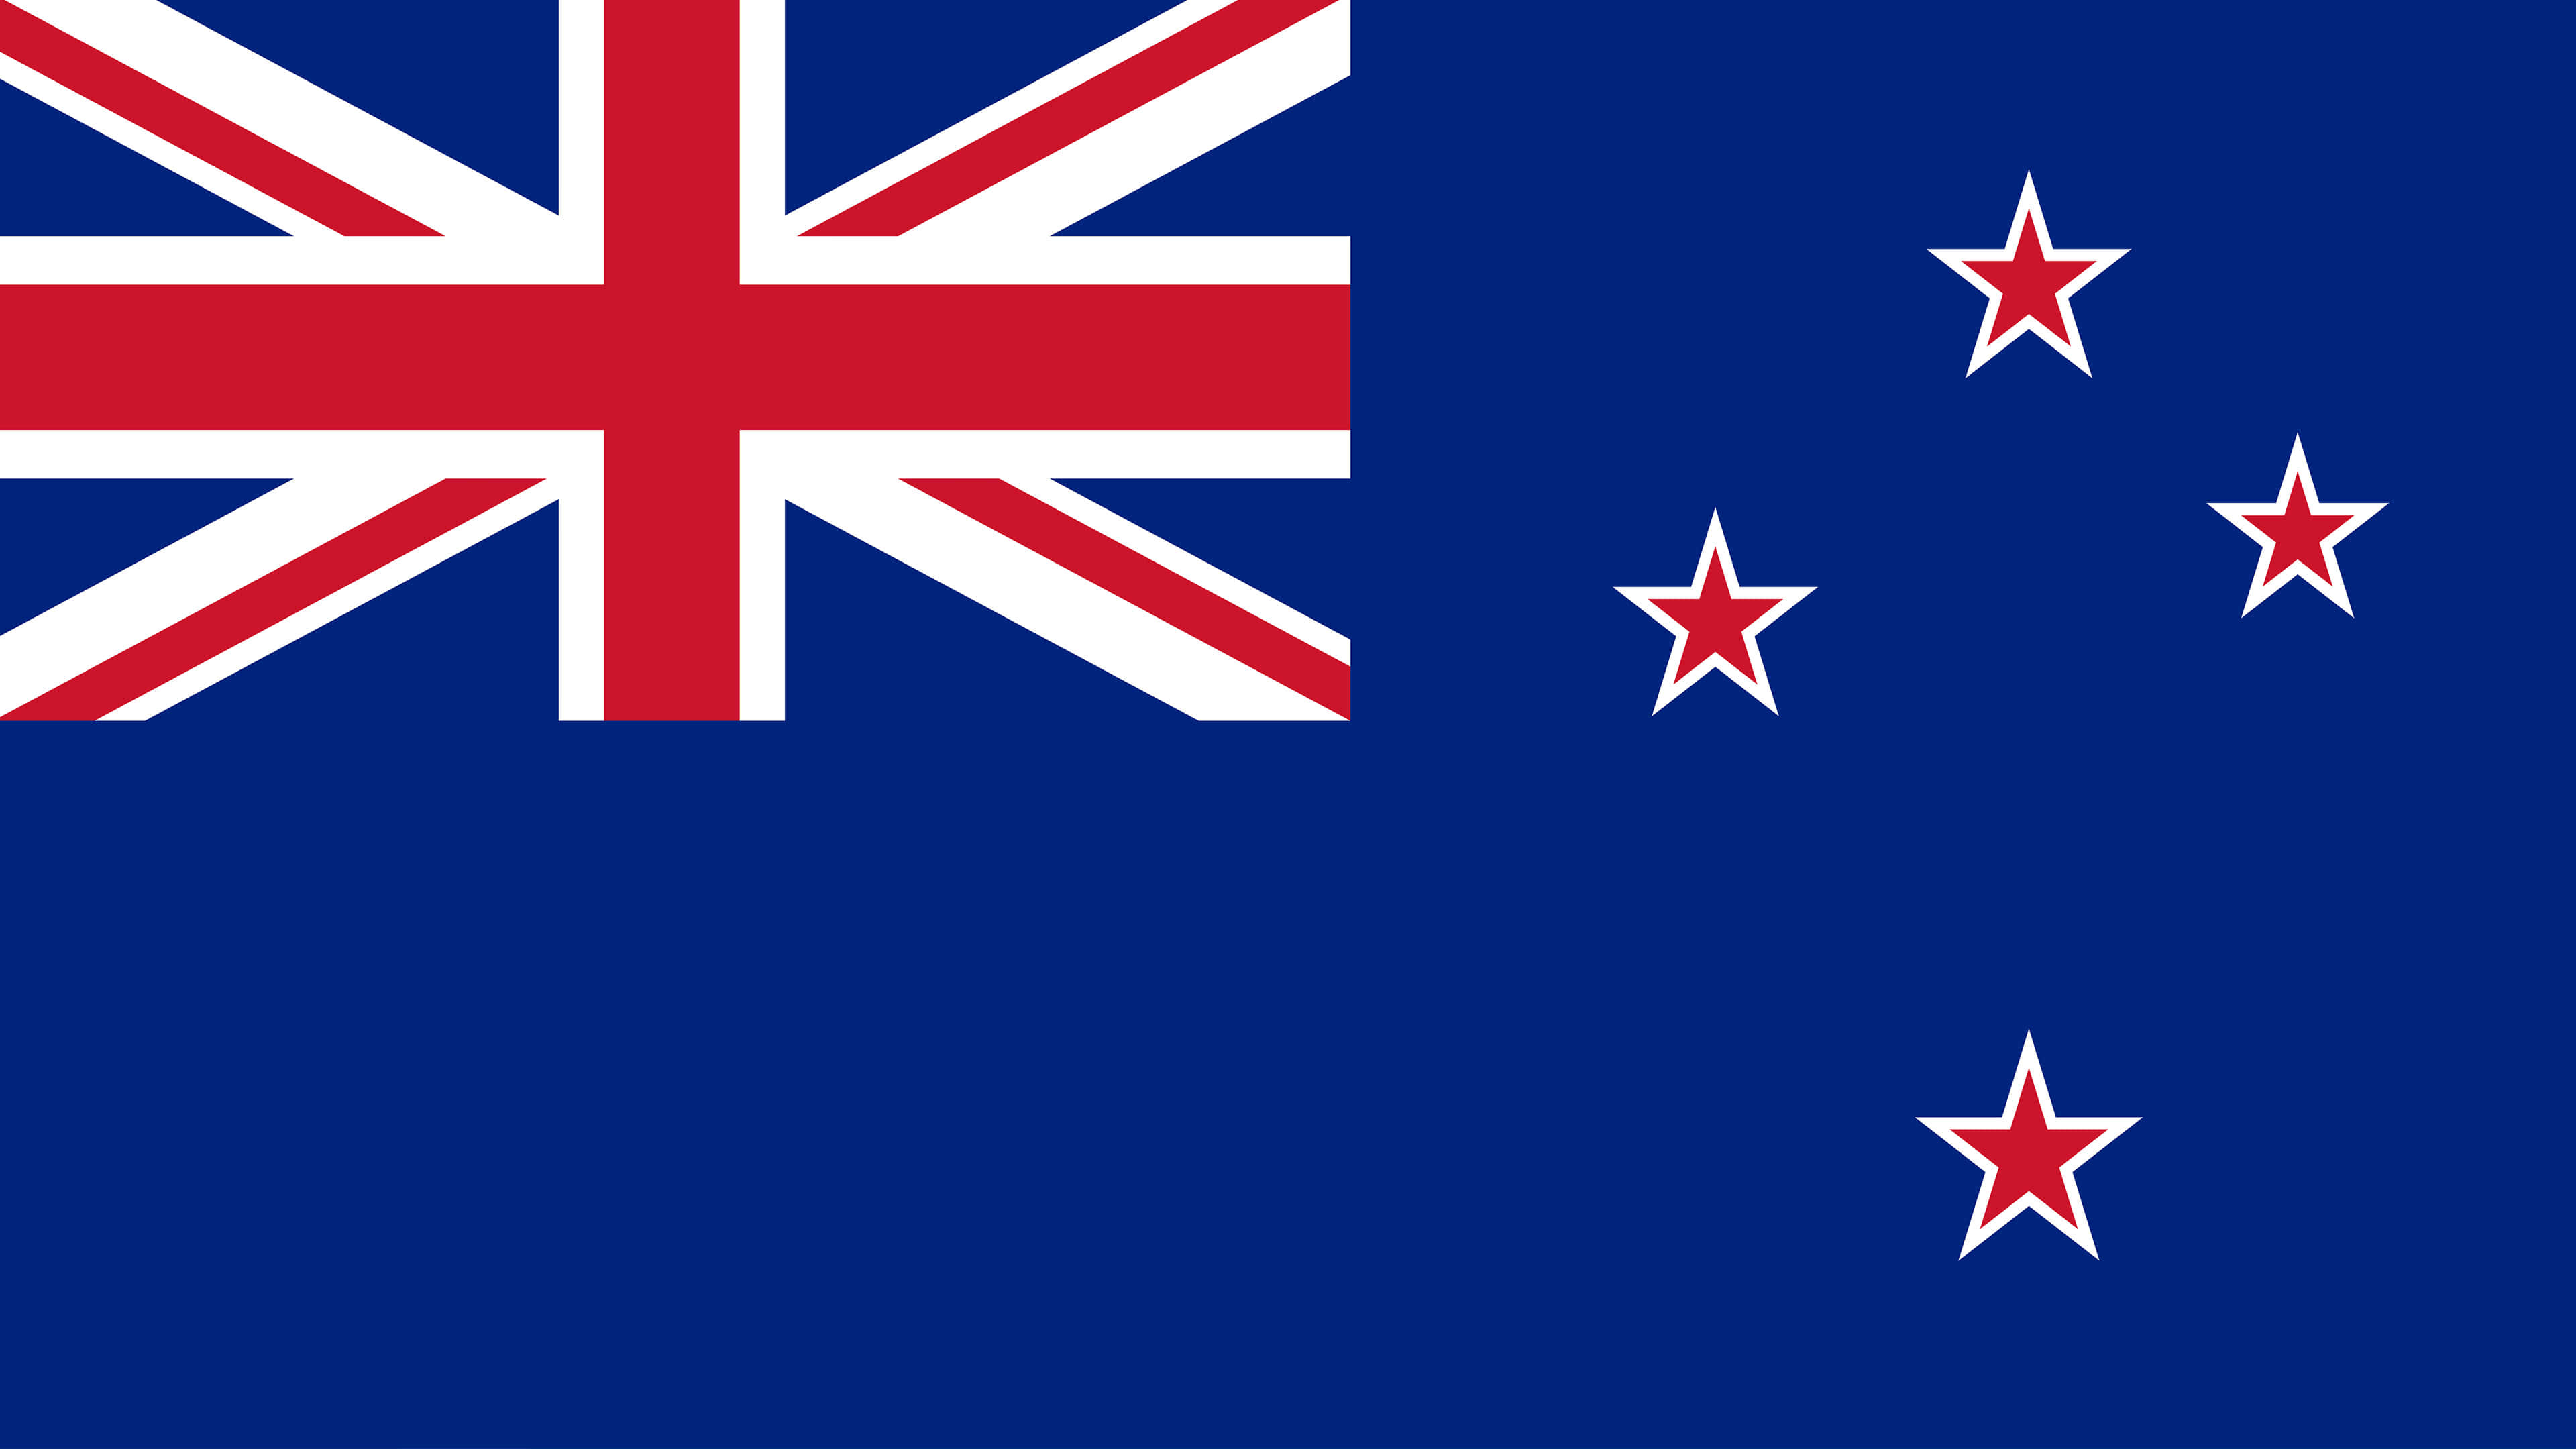 new zealand flag uhd 4k wallpaper